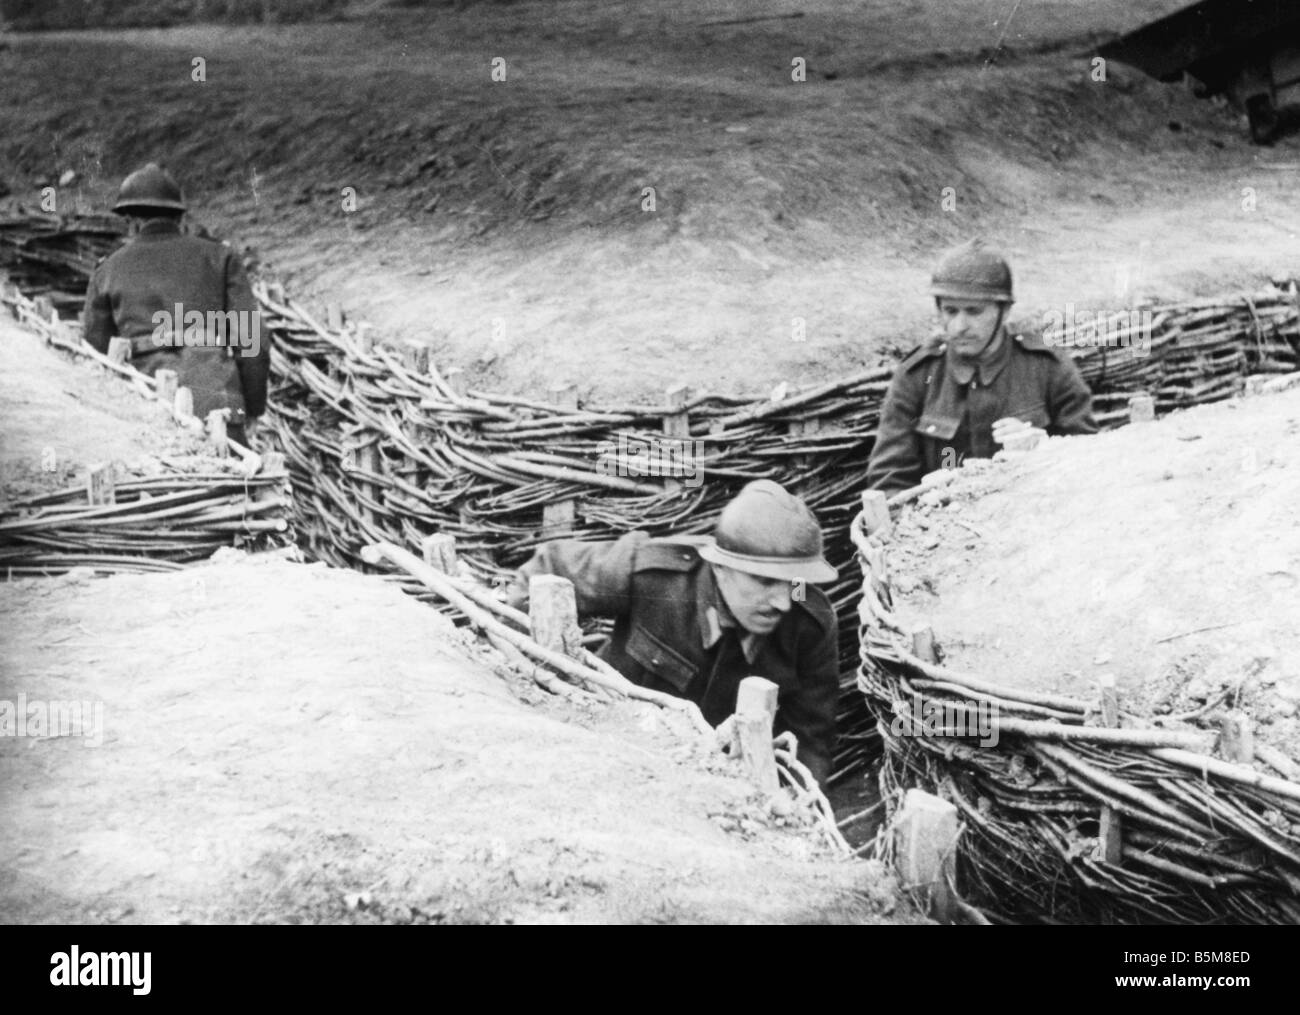 French troops in trenches World War I History France Trench warfare French soldiers in fortified trenches Photo - Stock Image